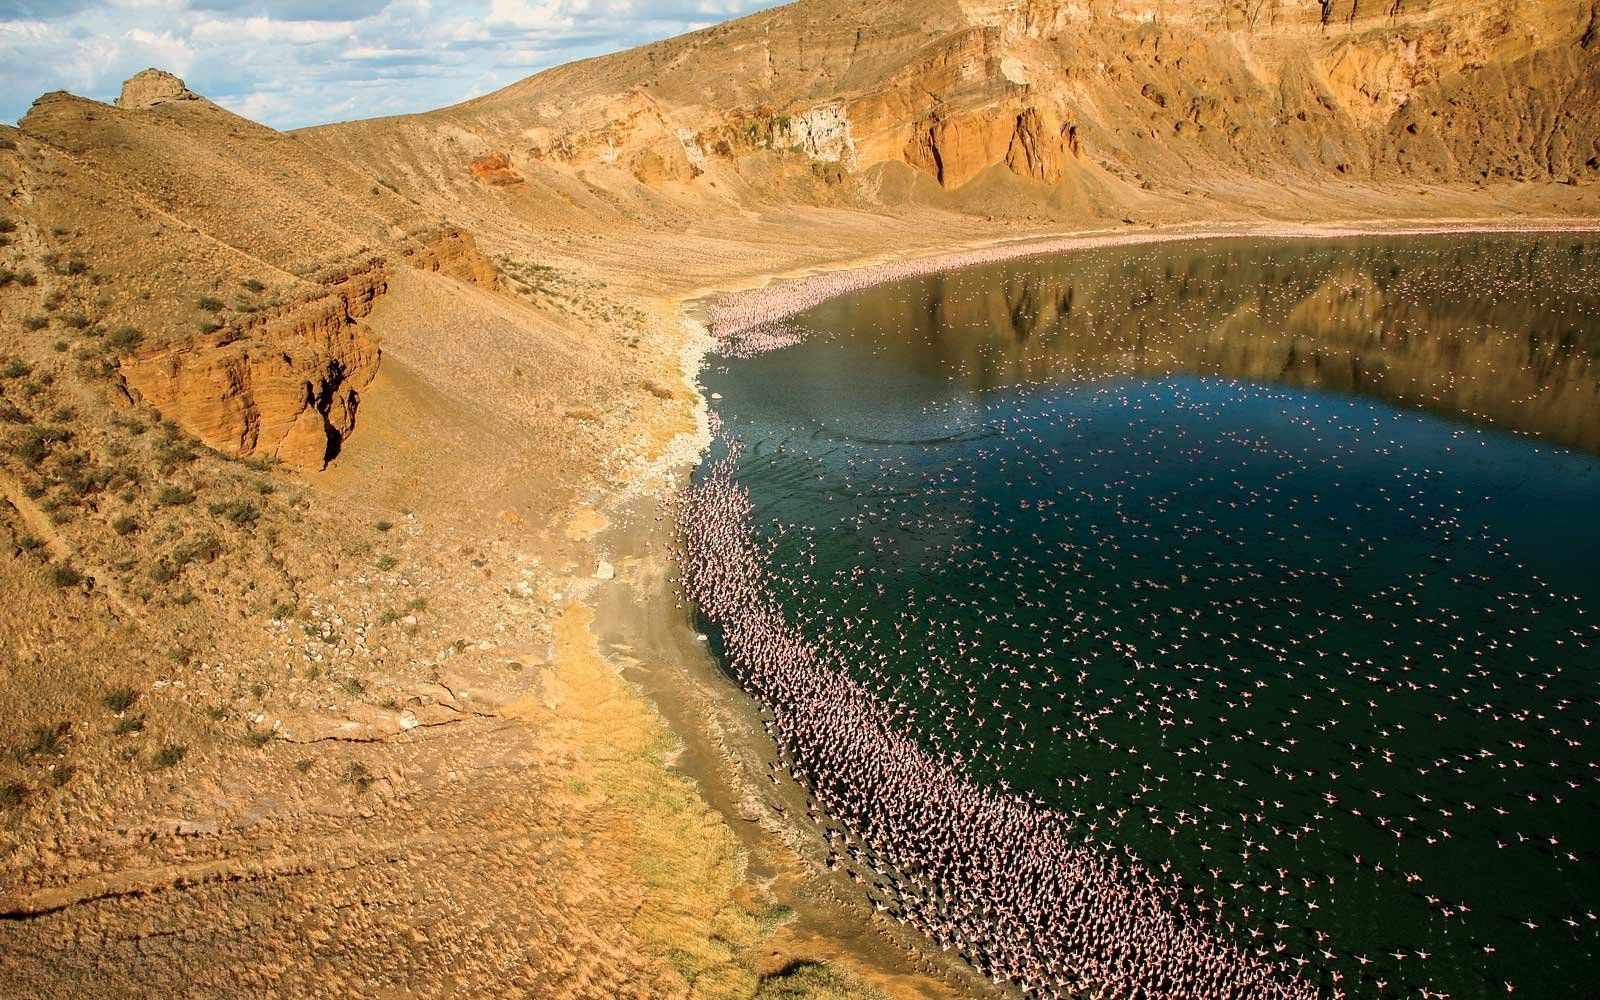 Lake Turkana, a lake inside a crater, with flamingoes